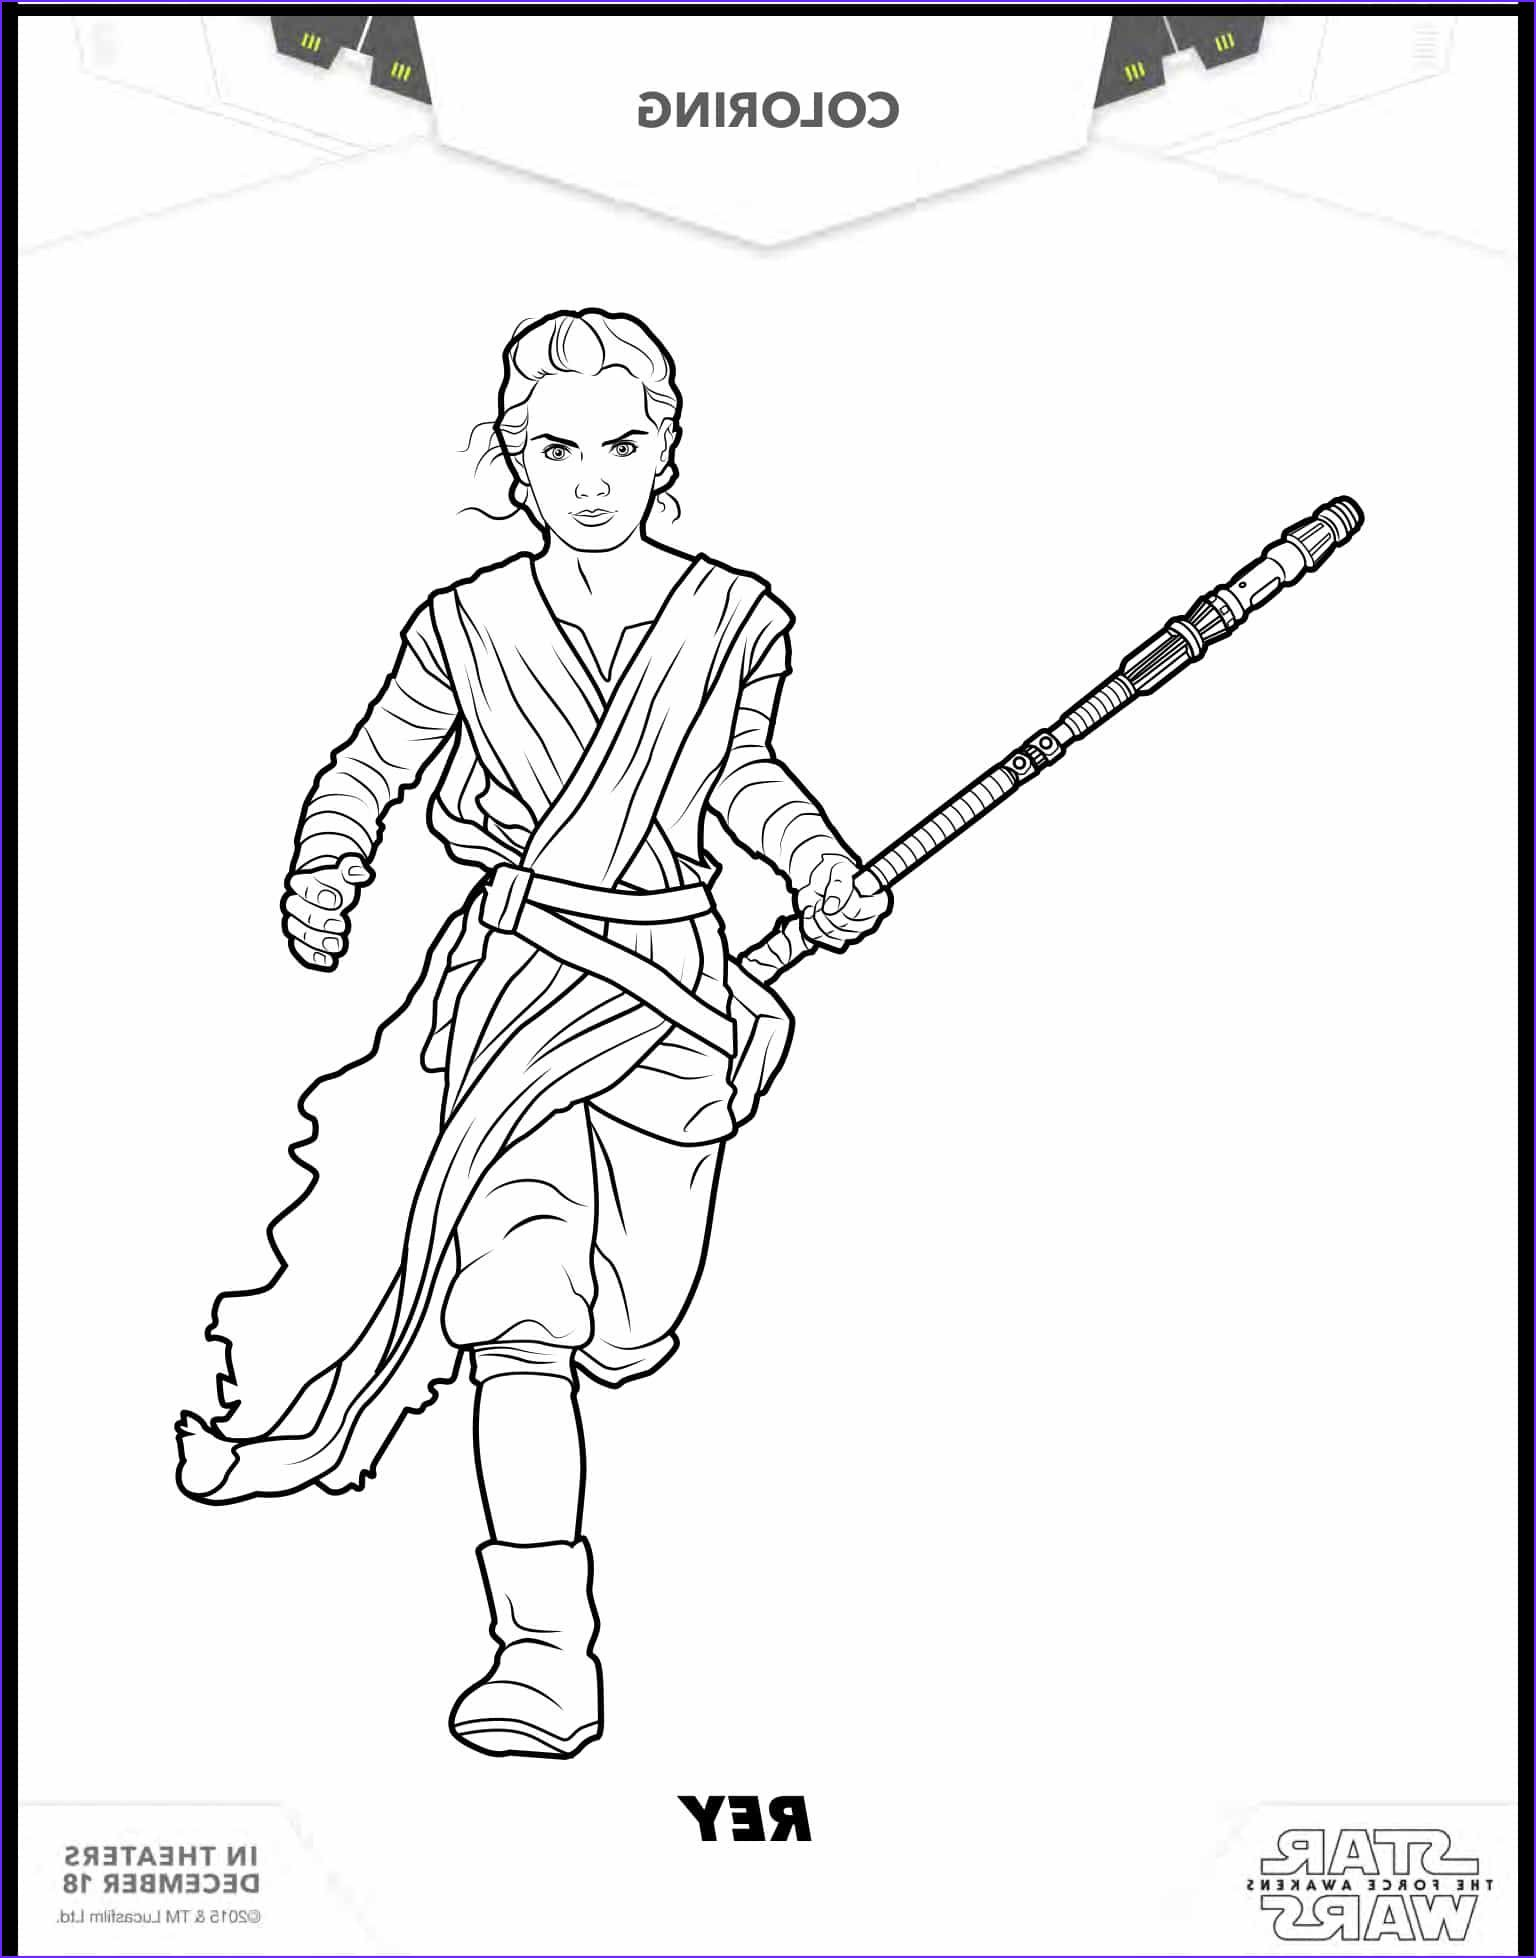 Star Wars Coloring Pages Star Wars Free To Color For Kids Star